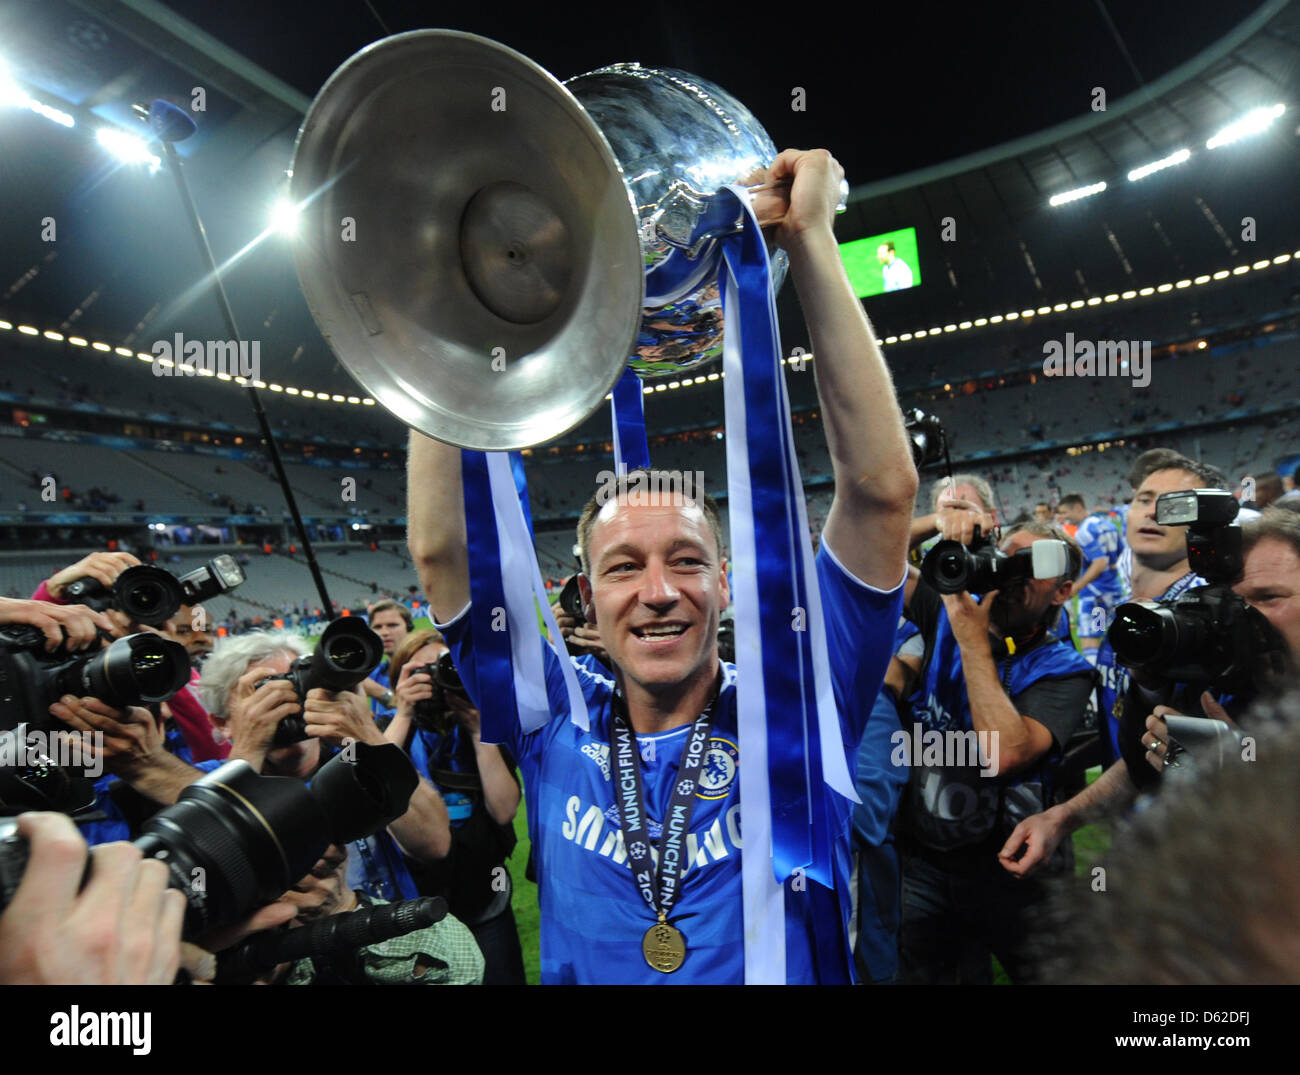 Chelseas John Terry Celebrates With The Trophy After UEFA Champions League Soccer Final Between FC Bayern Munich And Chelsea At Fussball Arena